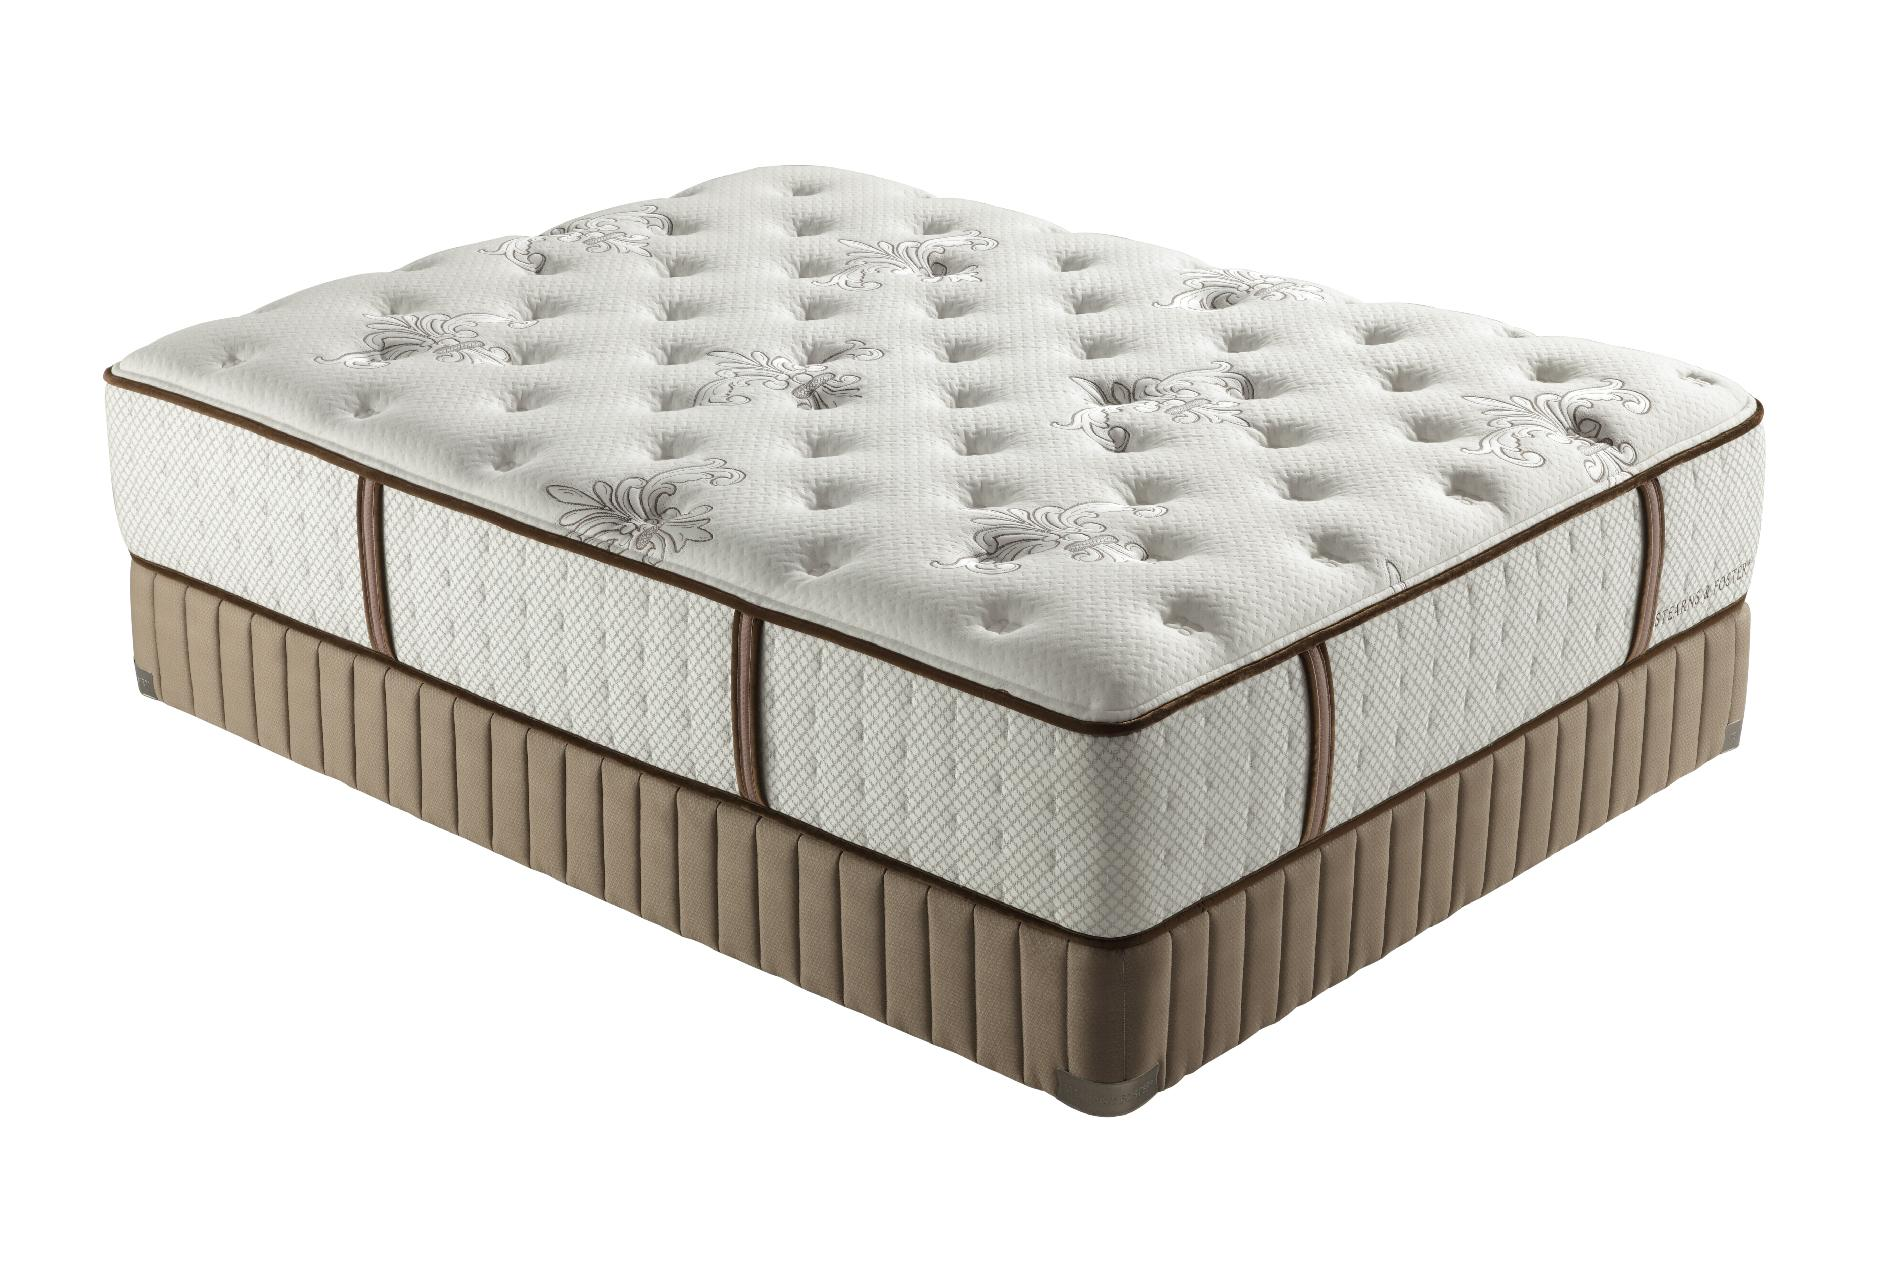 Stearns & Foster Estate Chasity Firm Queen Mattress Only